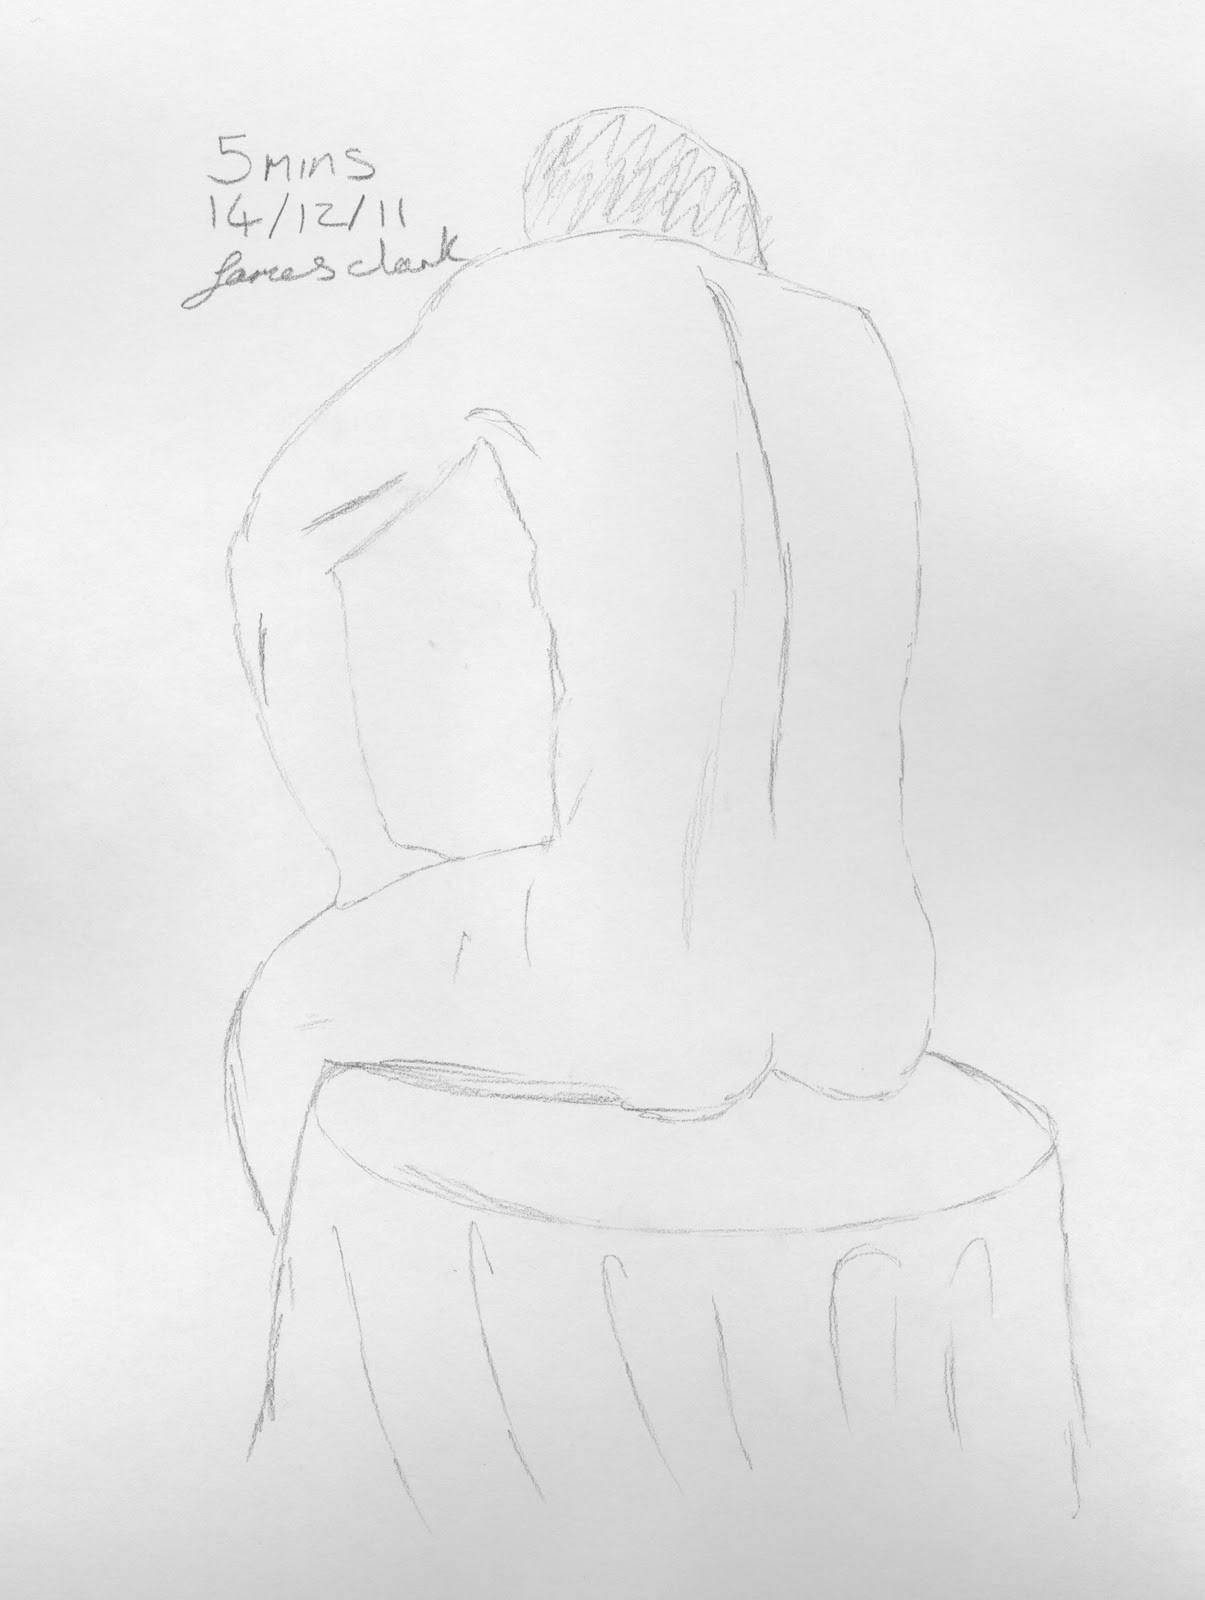 here in the second 5 minute sketch we have another seated position but somewhat different from the first as our model is now sporting a pose that suggests a